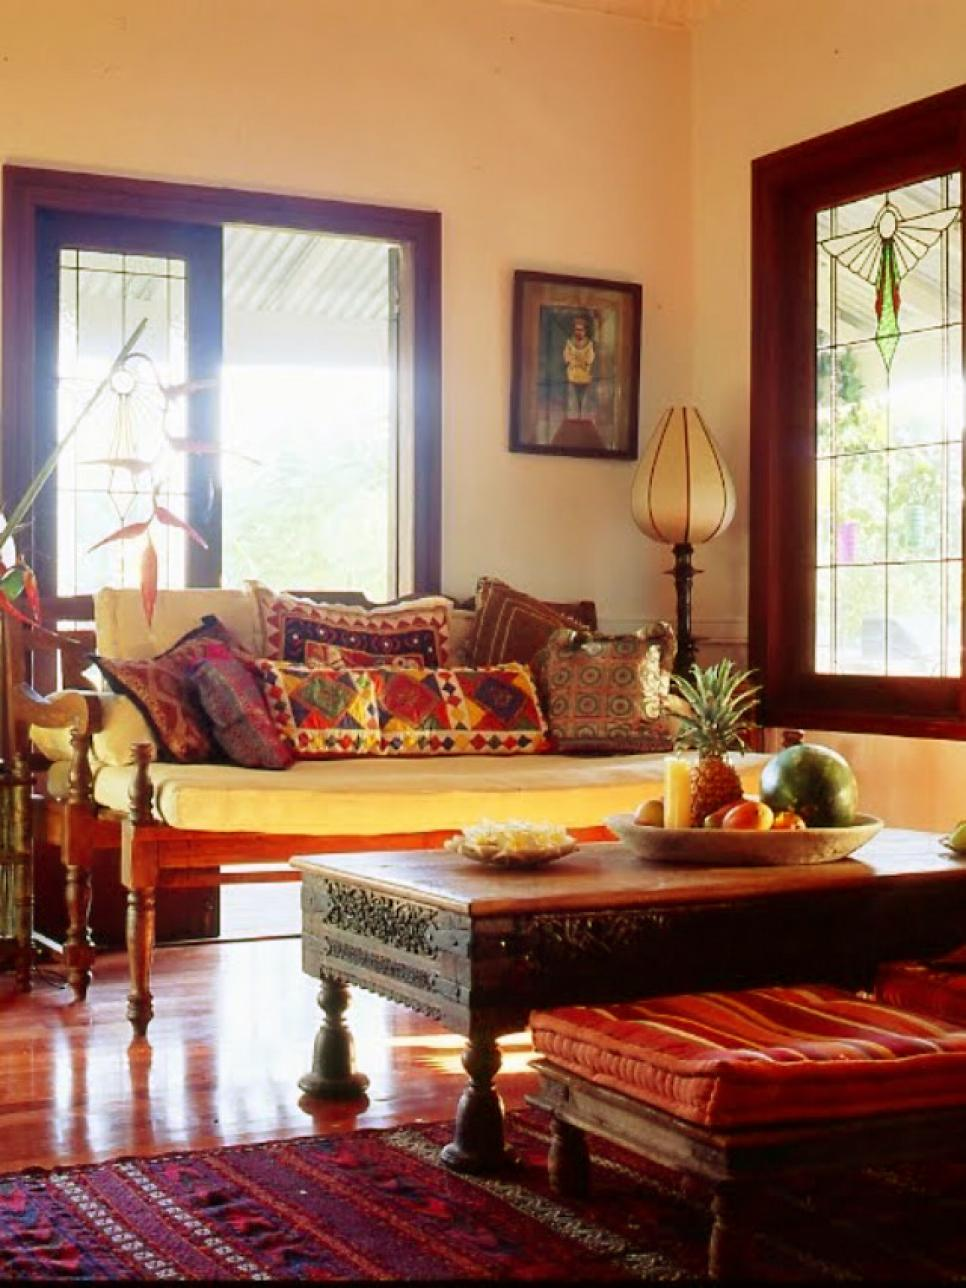 12 spaces inspired by india hgtv home design india residential interiors interior design